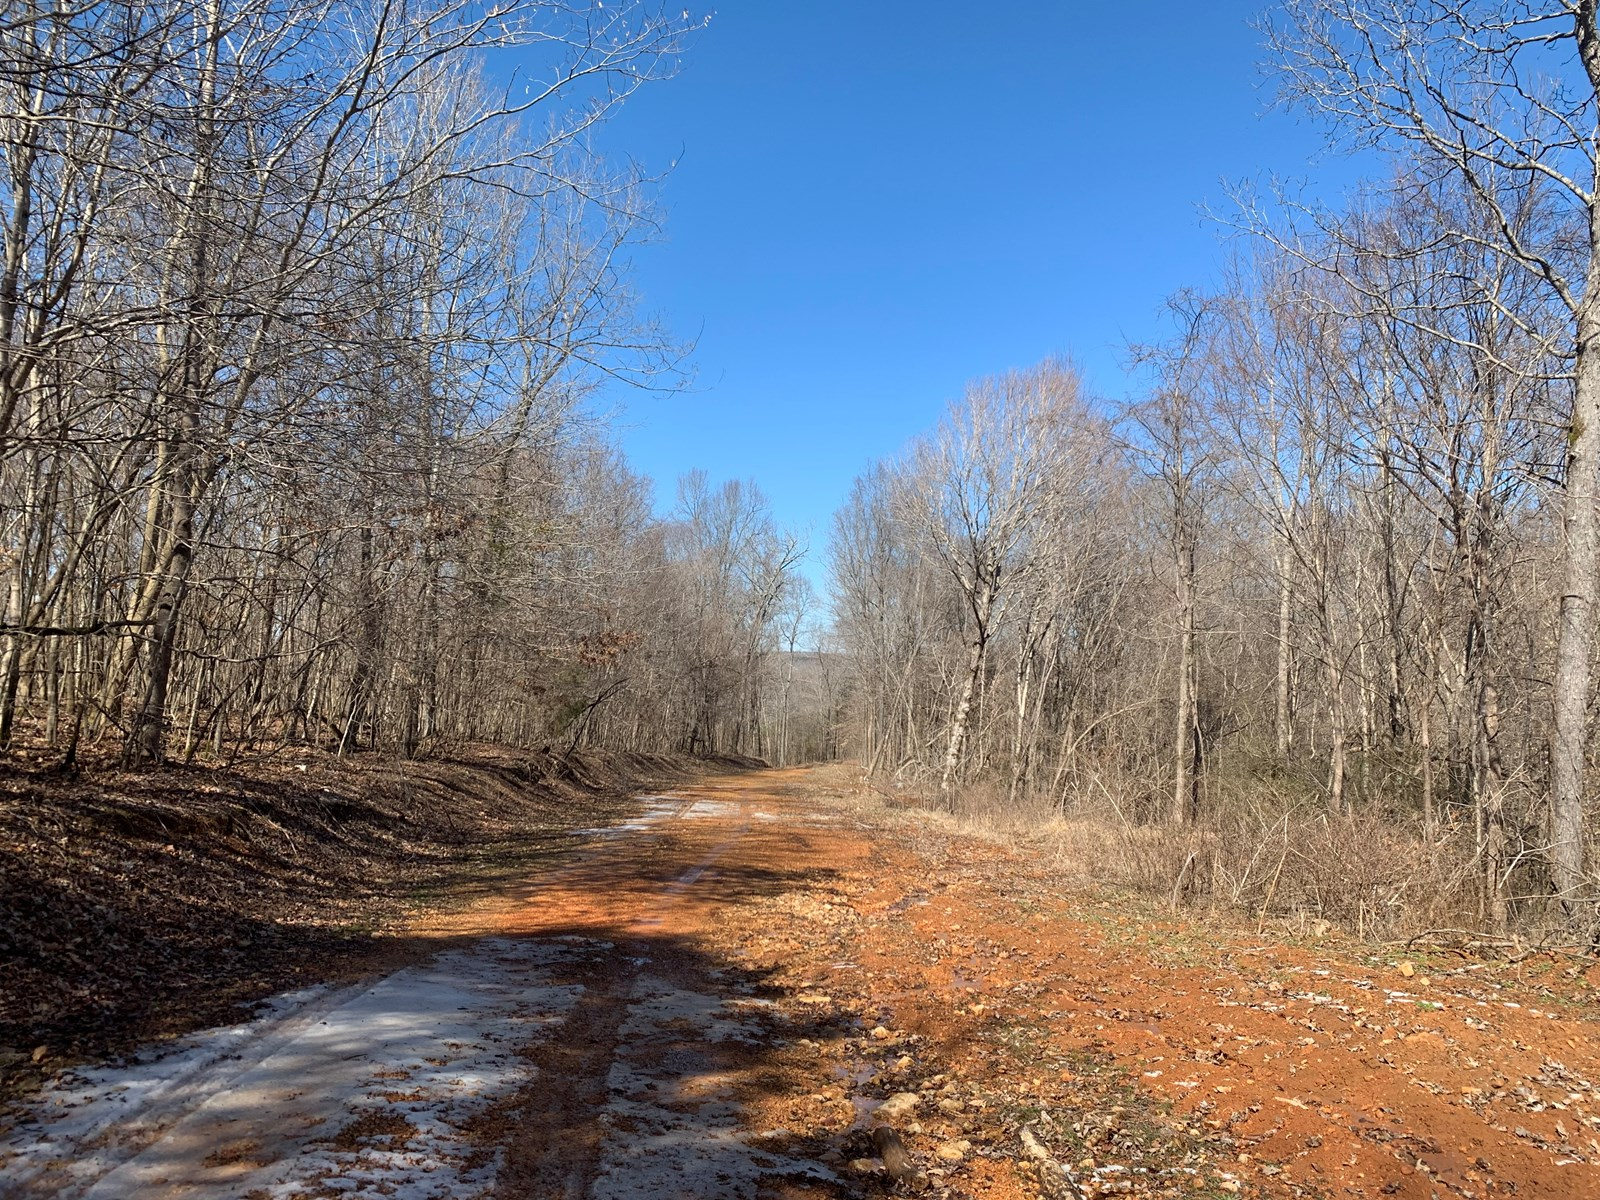 162 acres for sale in southern Tennessee!